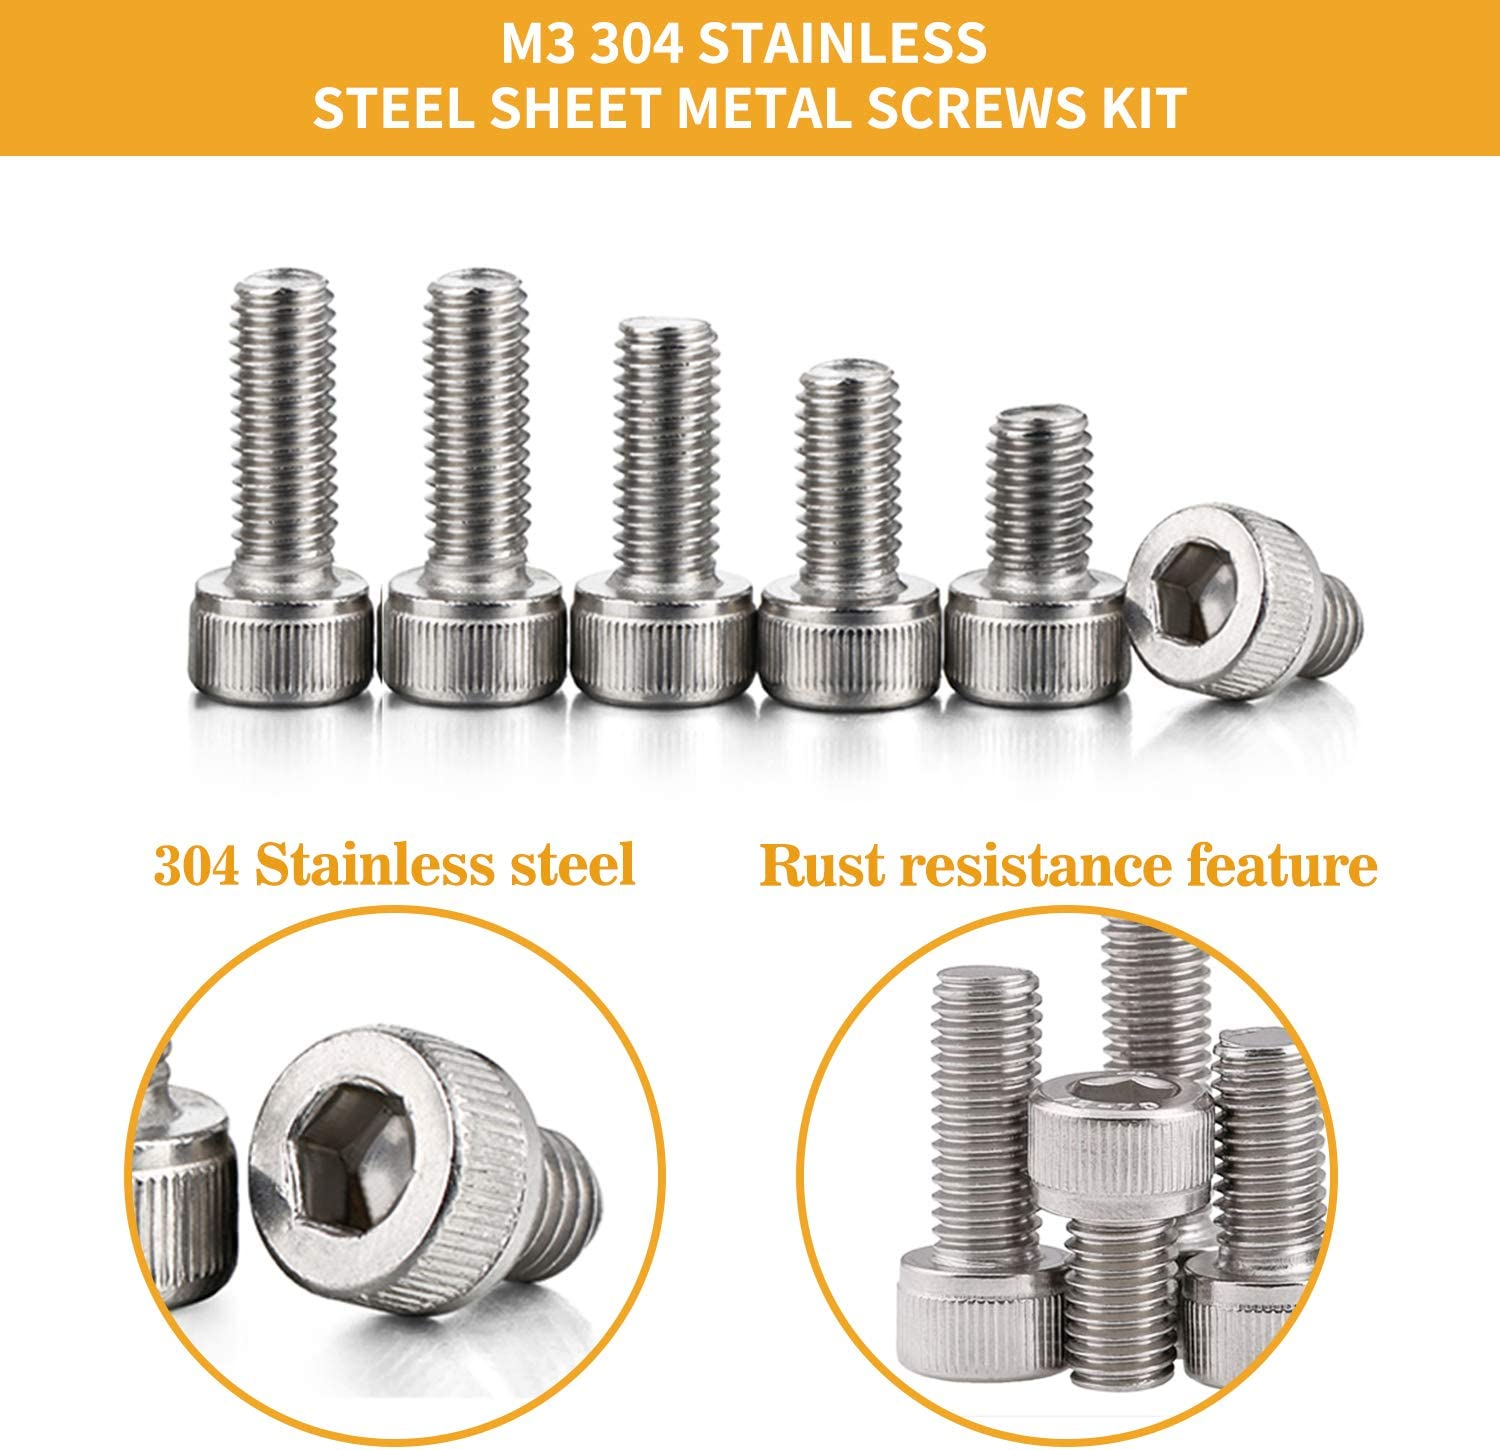 VIGRUE Stainless Steel M3 Hex Socket Head Cap Screws Bolts Nuts and Flat Washers Assortment Kit with Allen Wrench 1110PCS